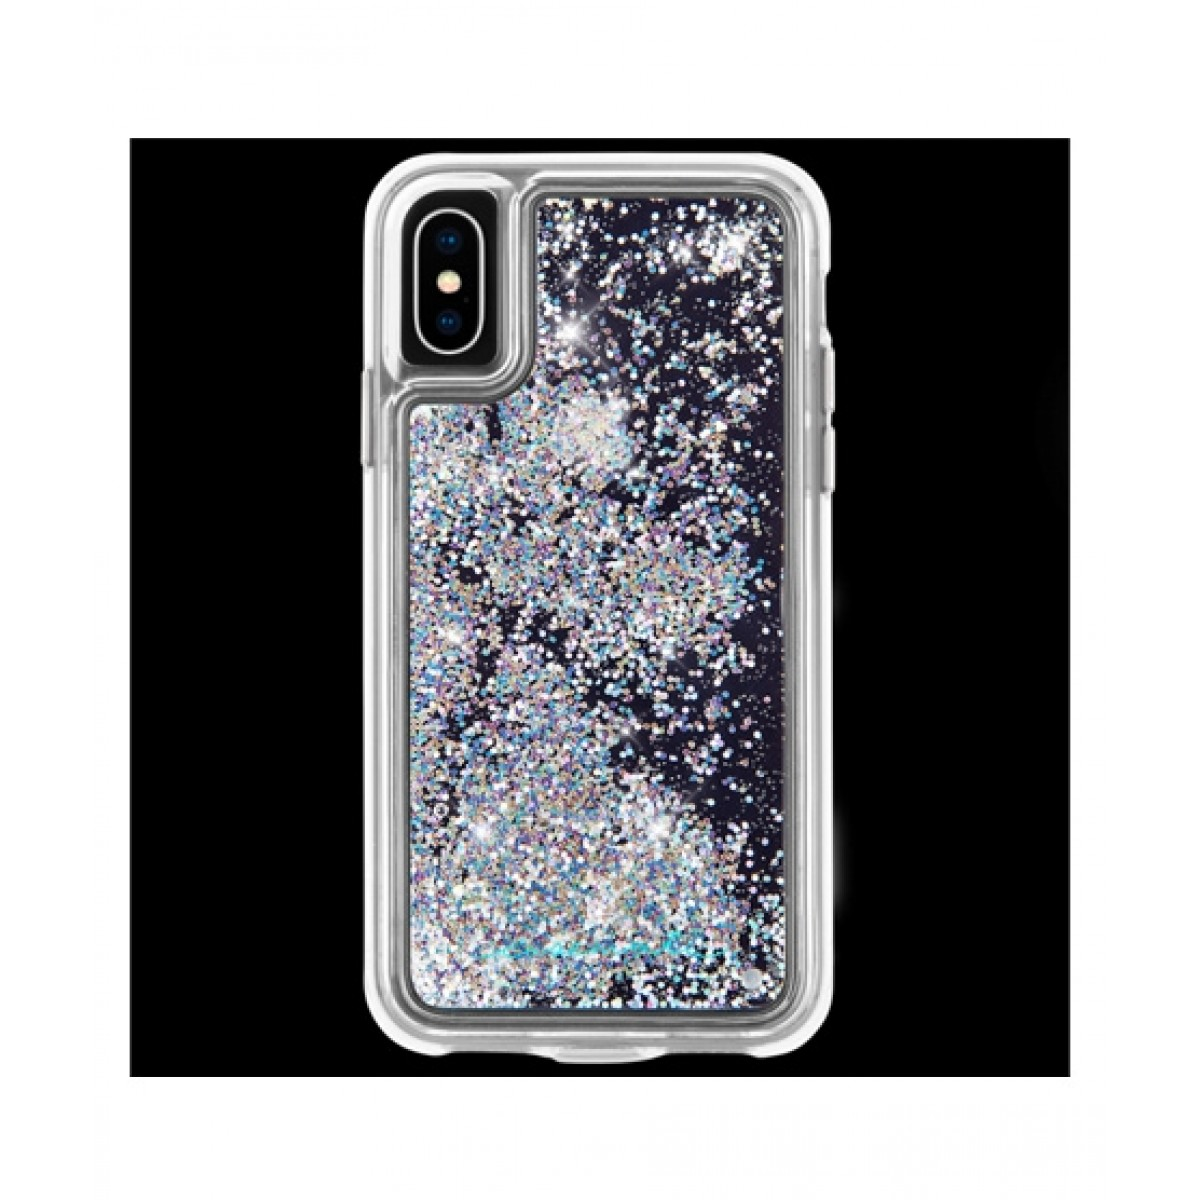 new arrivals e9ebb 1139f Case Mate Waterfall Iridescent Diamond Case For iPhone XS